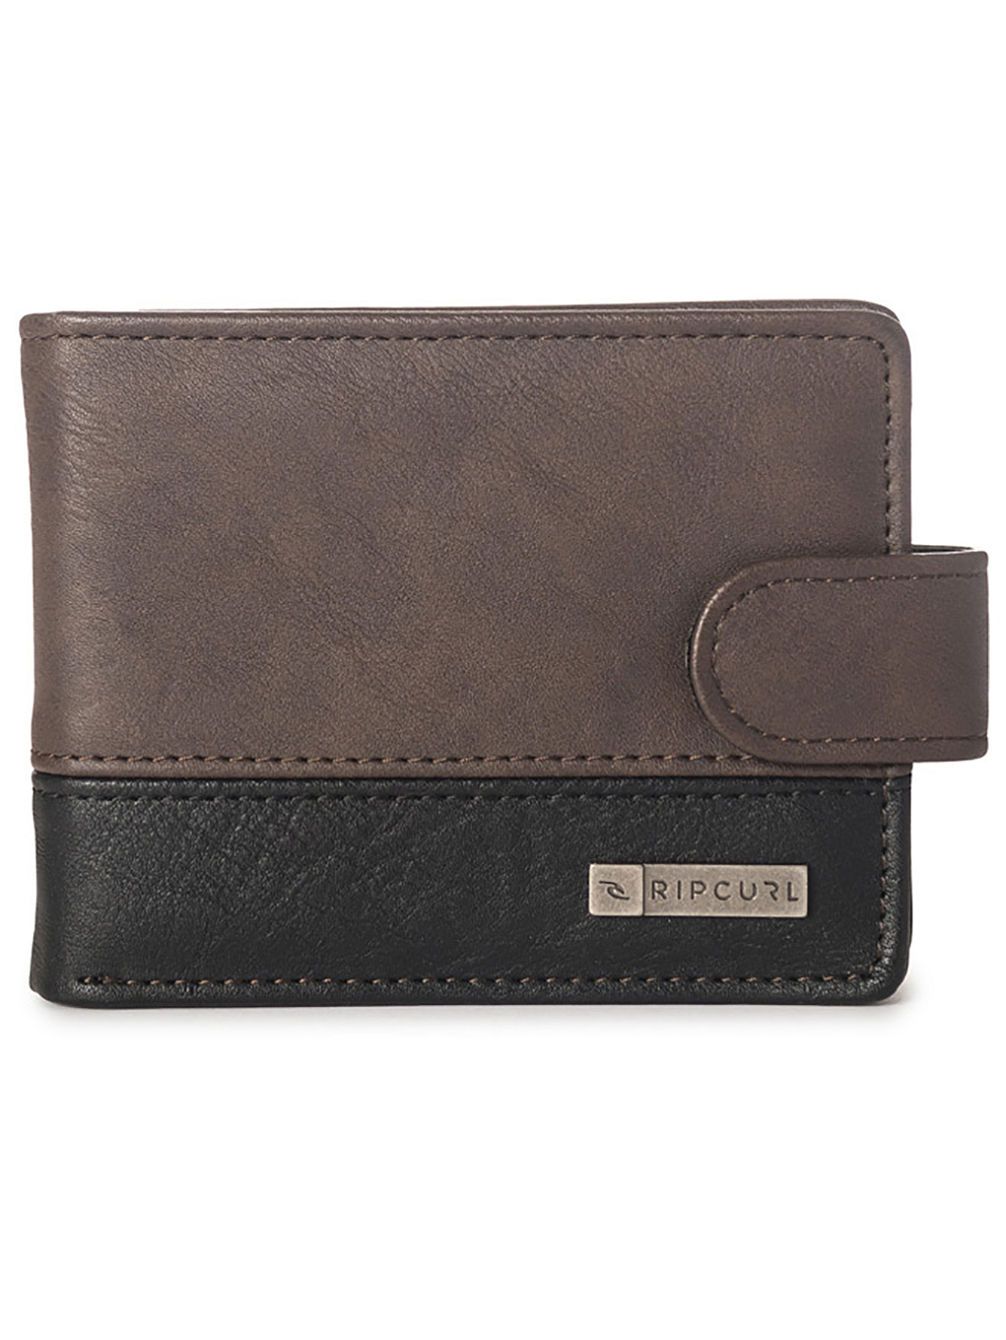 Clip Pu All Day Wallet